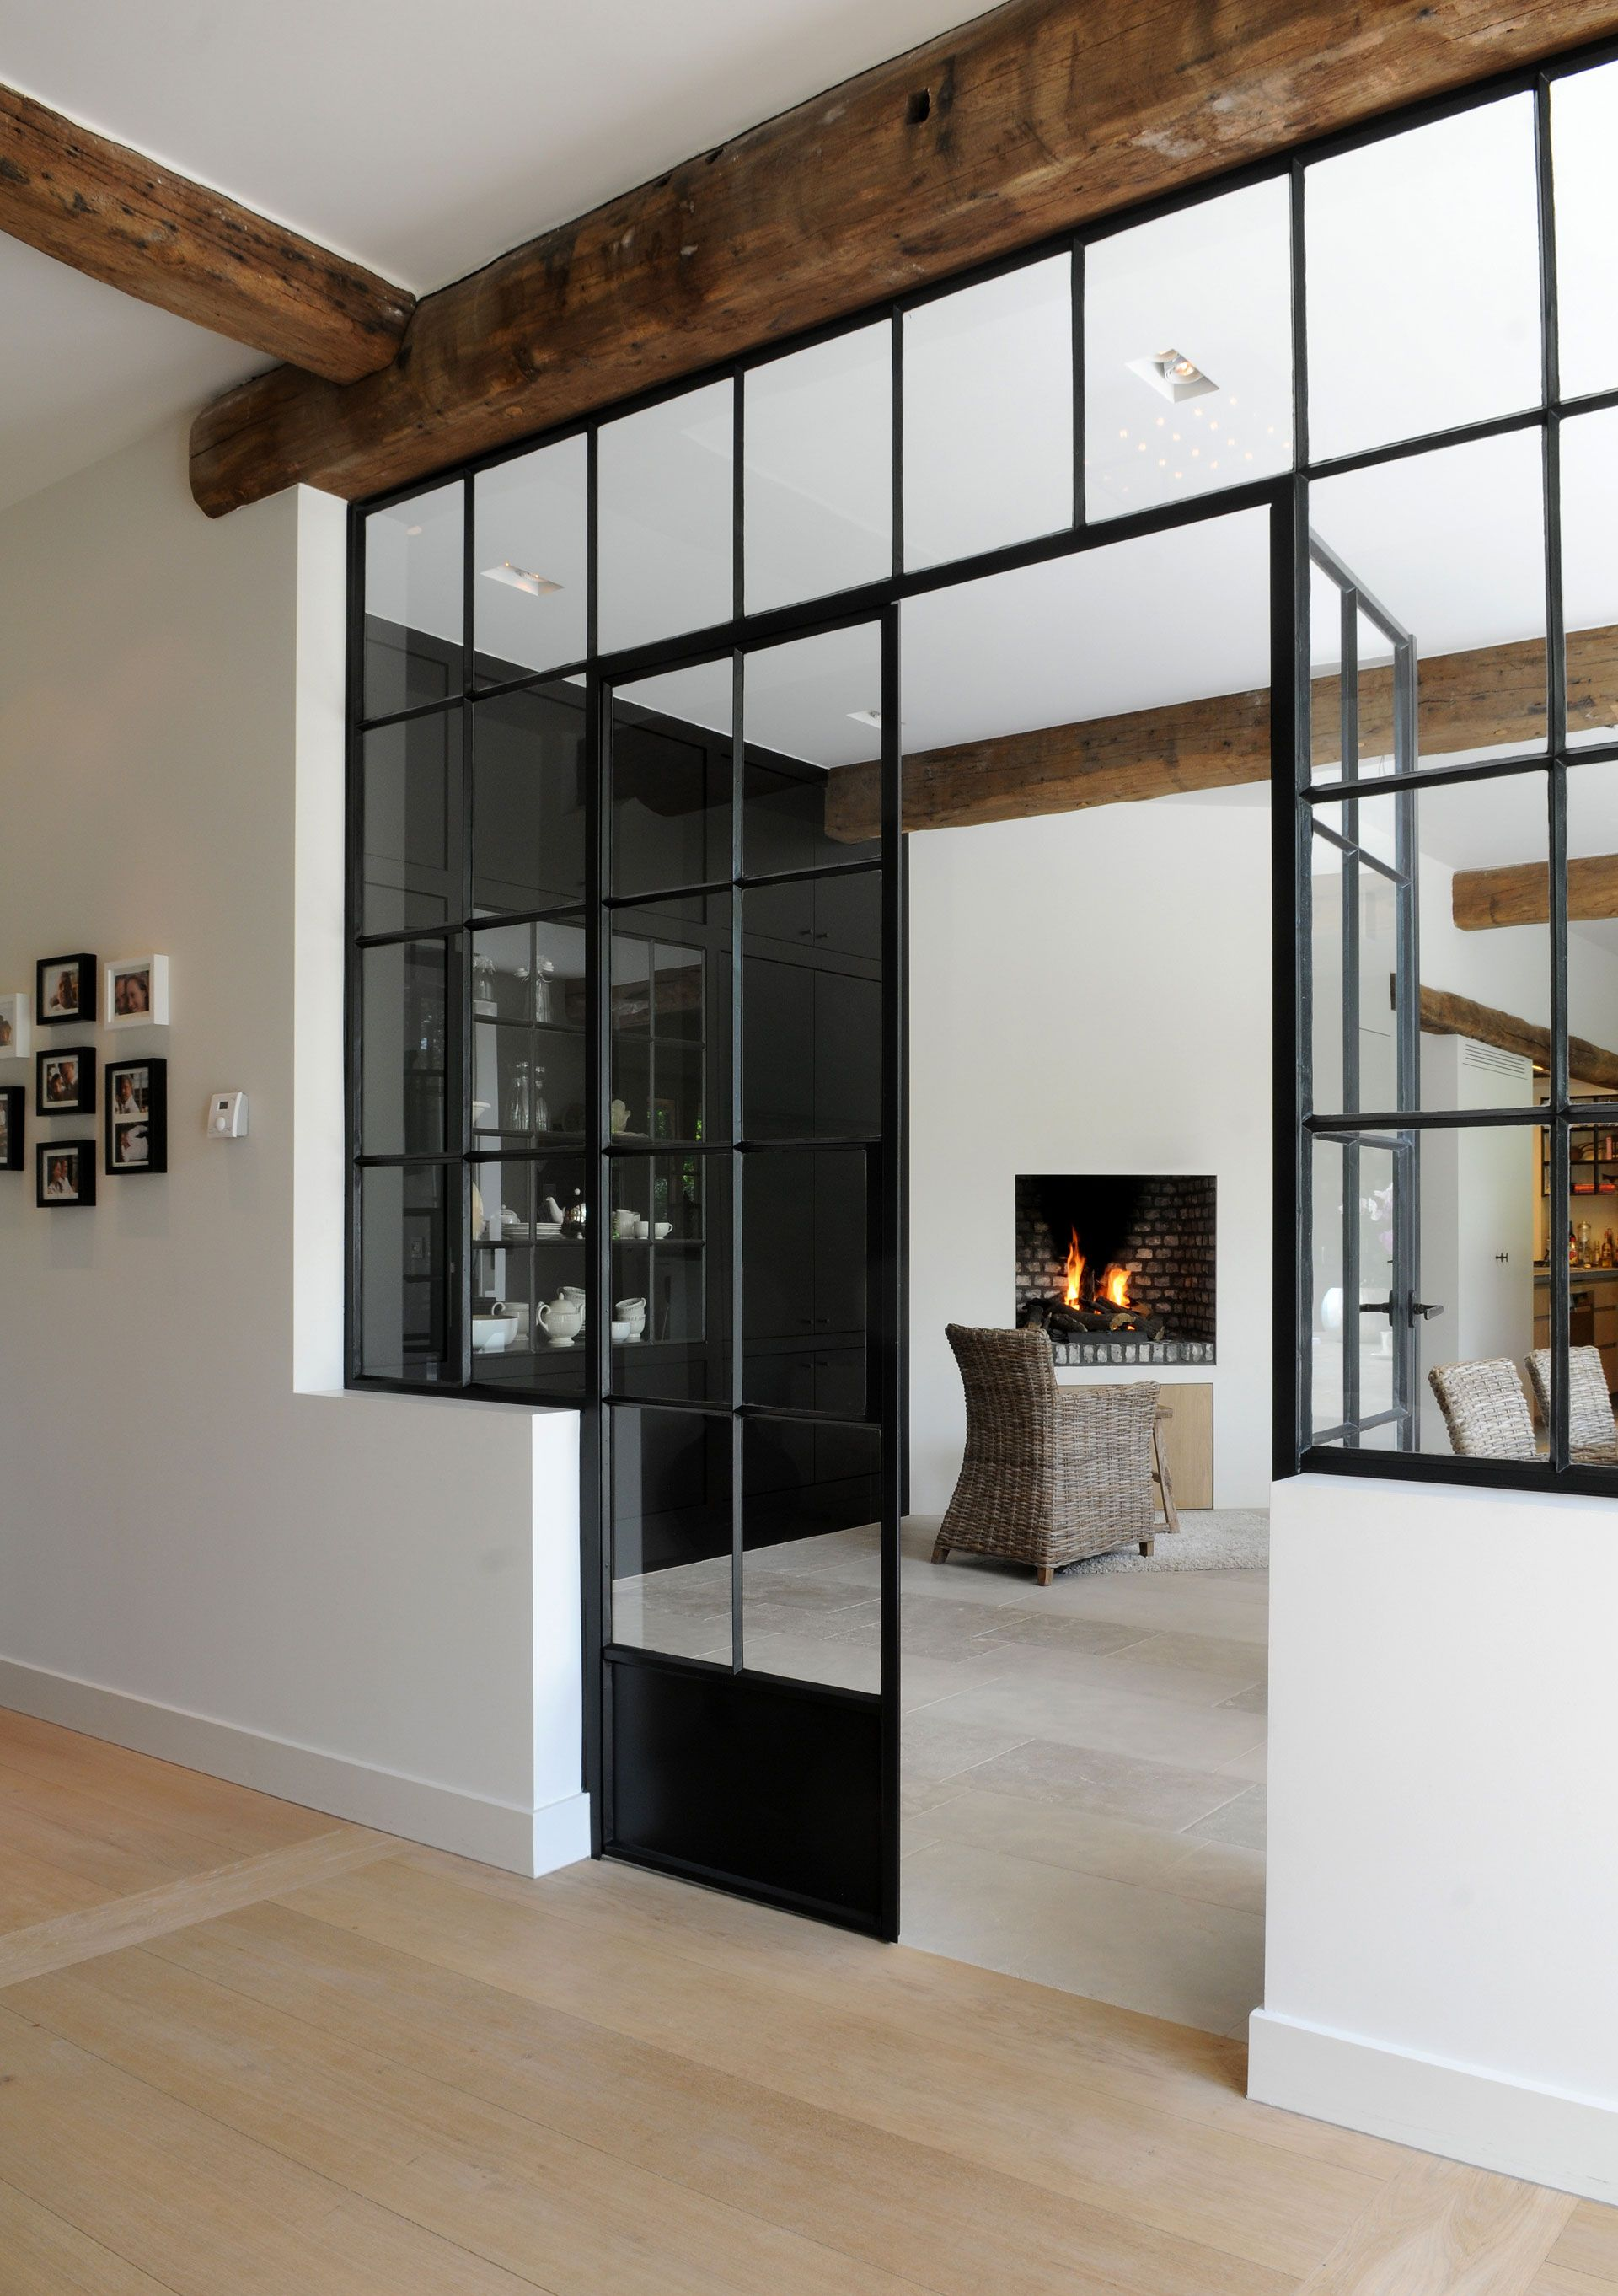 A Plus Keuken Tienen Hot Rolled Steel Doors And Barn Beams Small Hillside Home Ideas